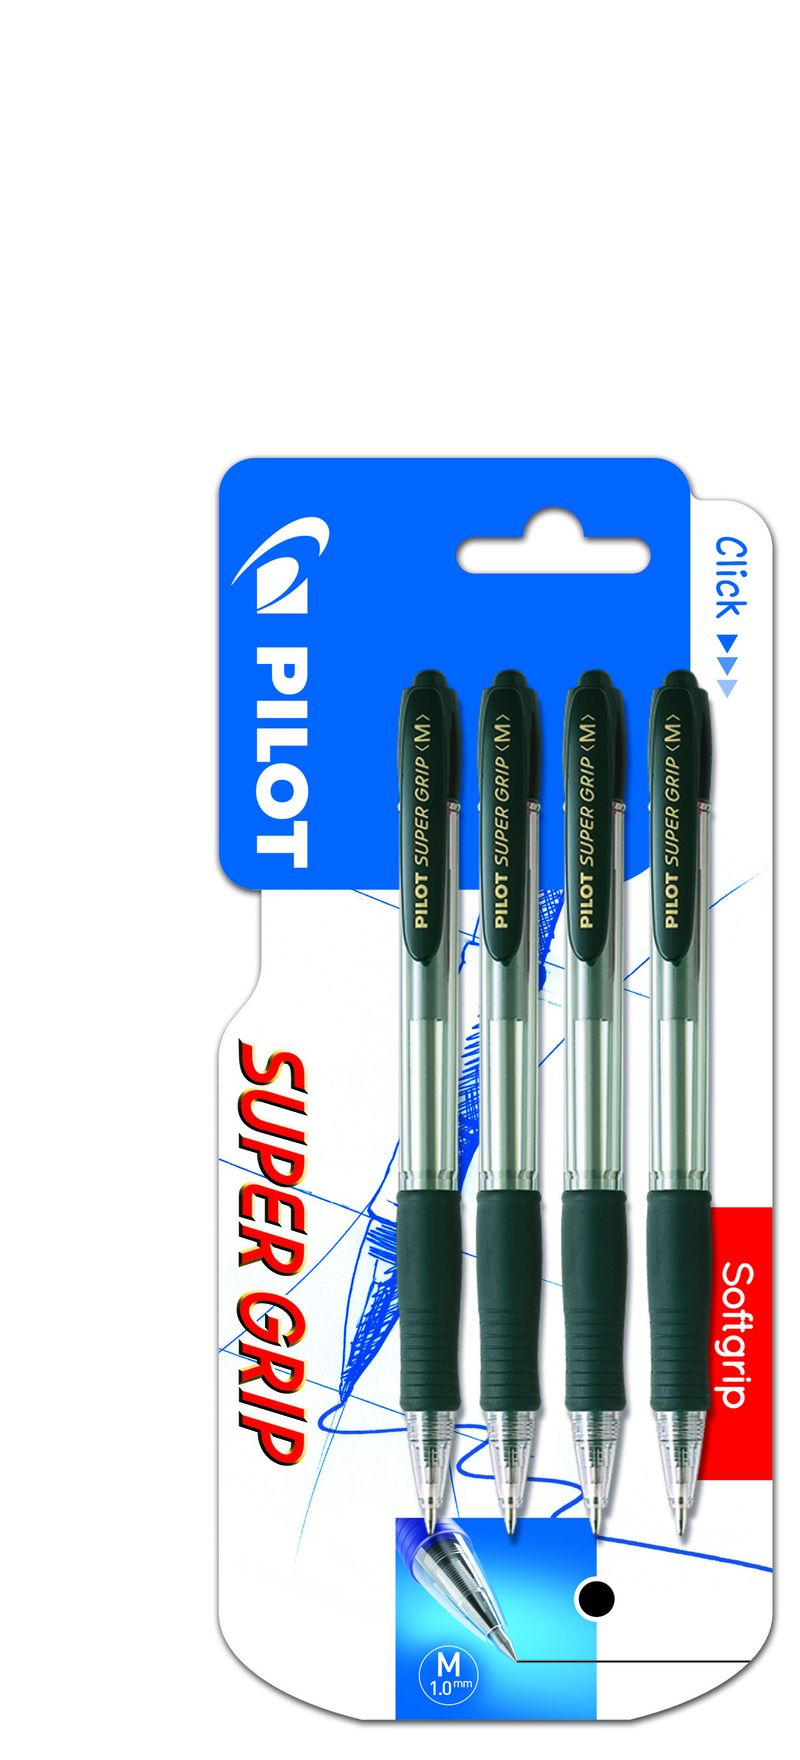 BLISTER SUPER GRIP BOLIGRAFO RETRACTIL. TINTA BASE ACEITE (4 UDS) 4 NEGROS